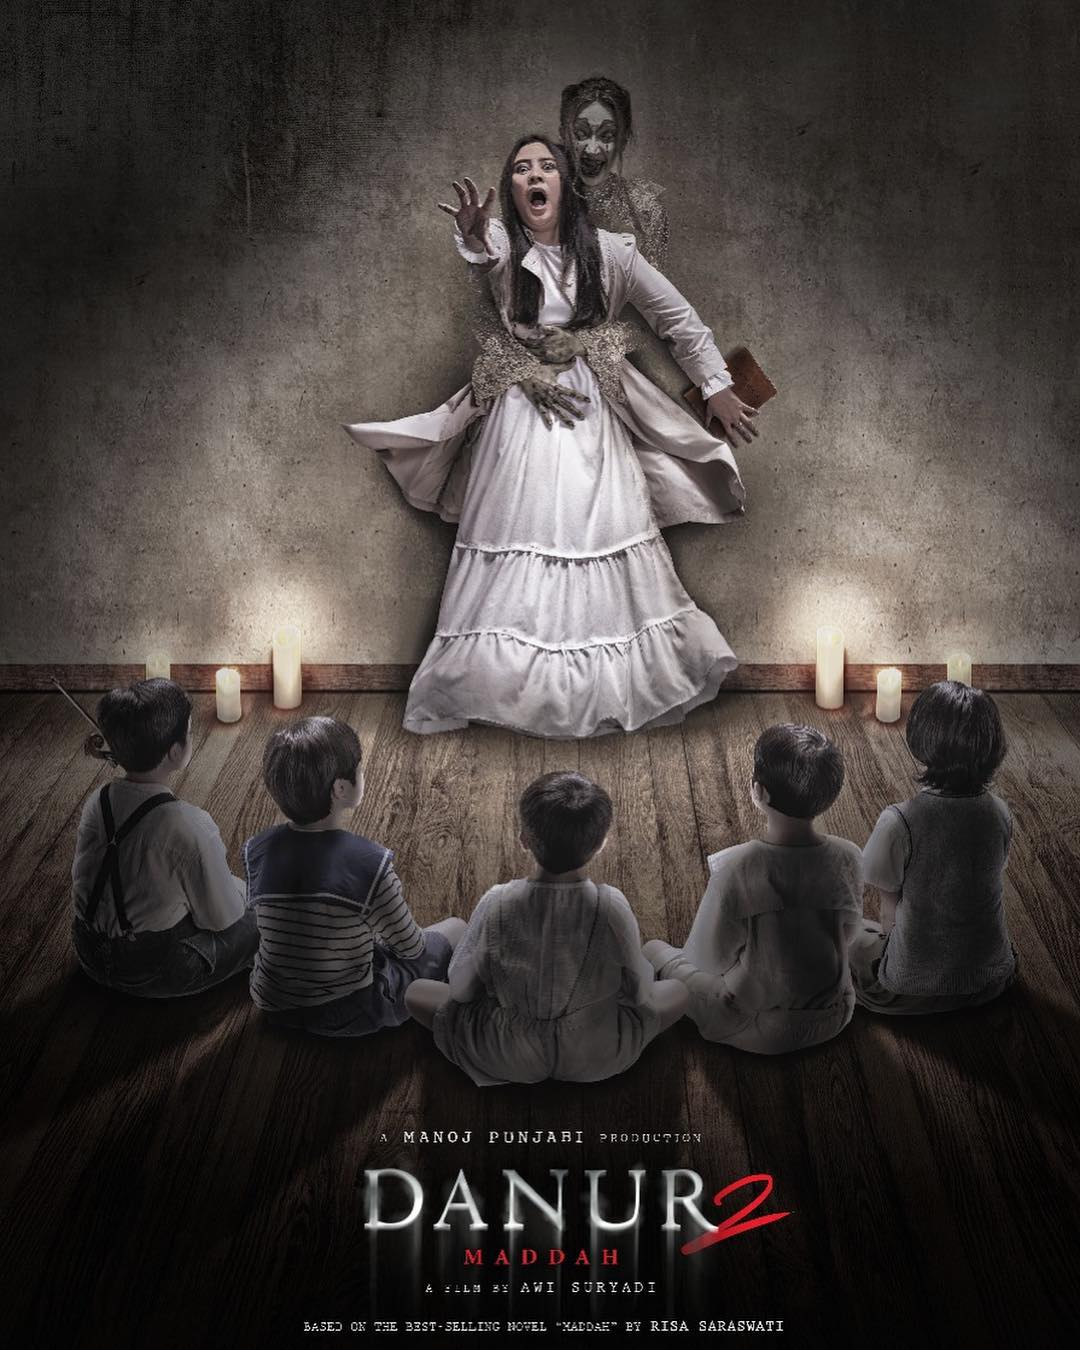 Film Danur 2 Full Movie